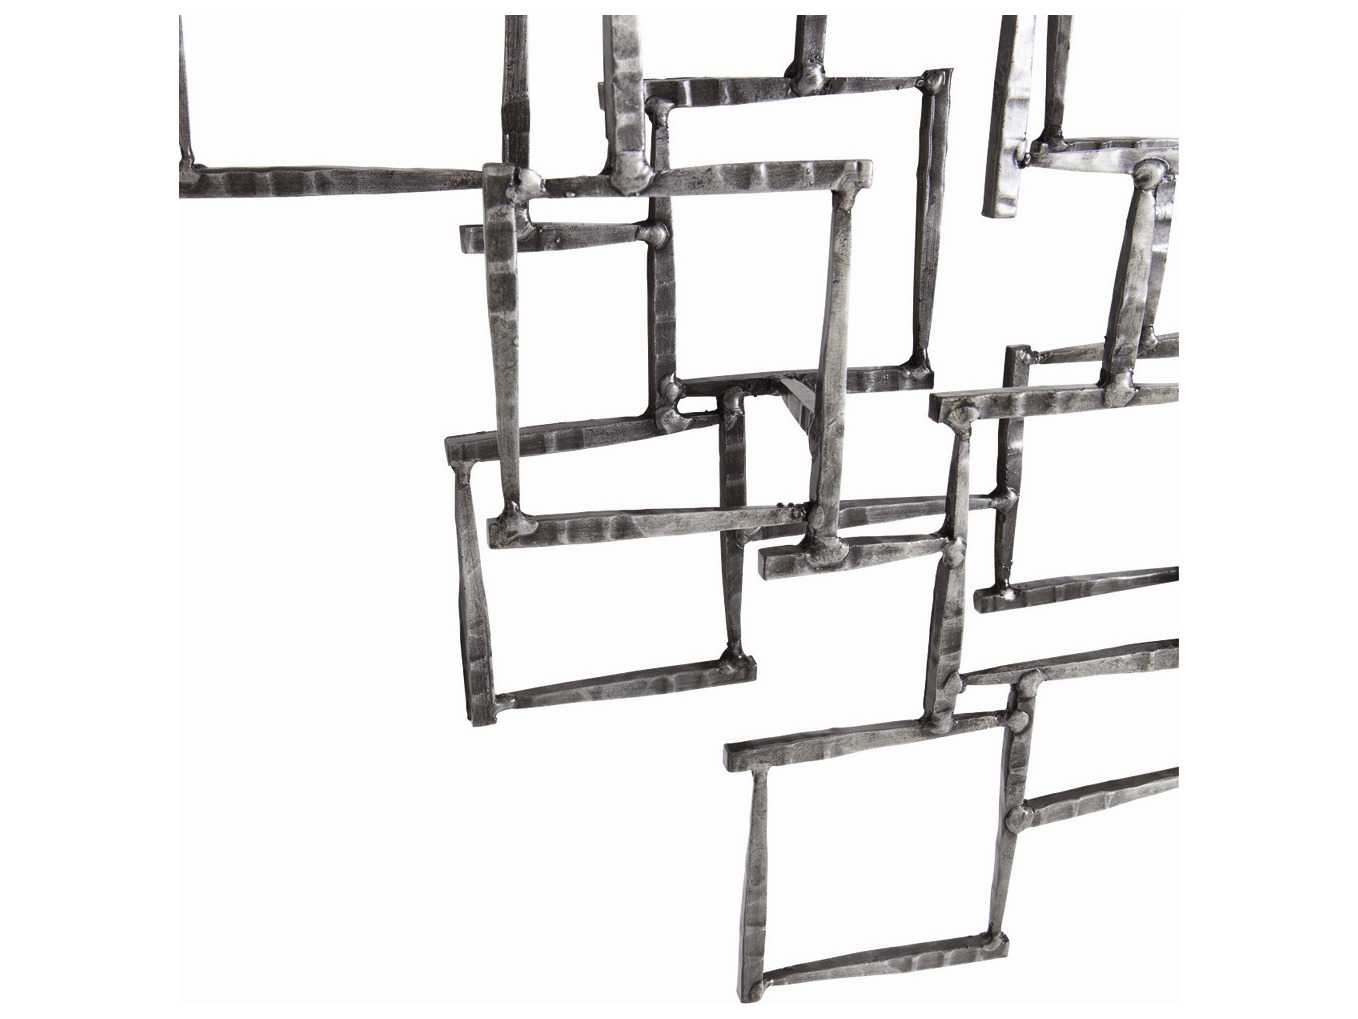 Arteriors Home Ecko Natural Iron Wall Sculpture